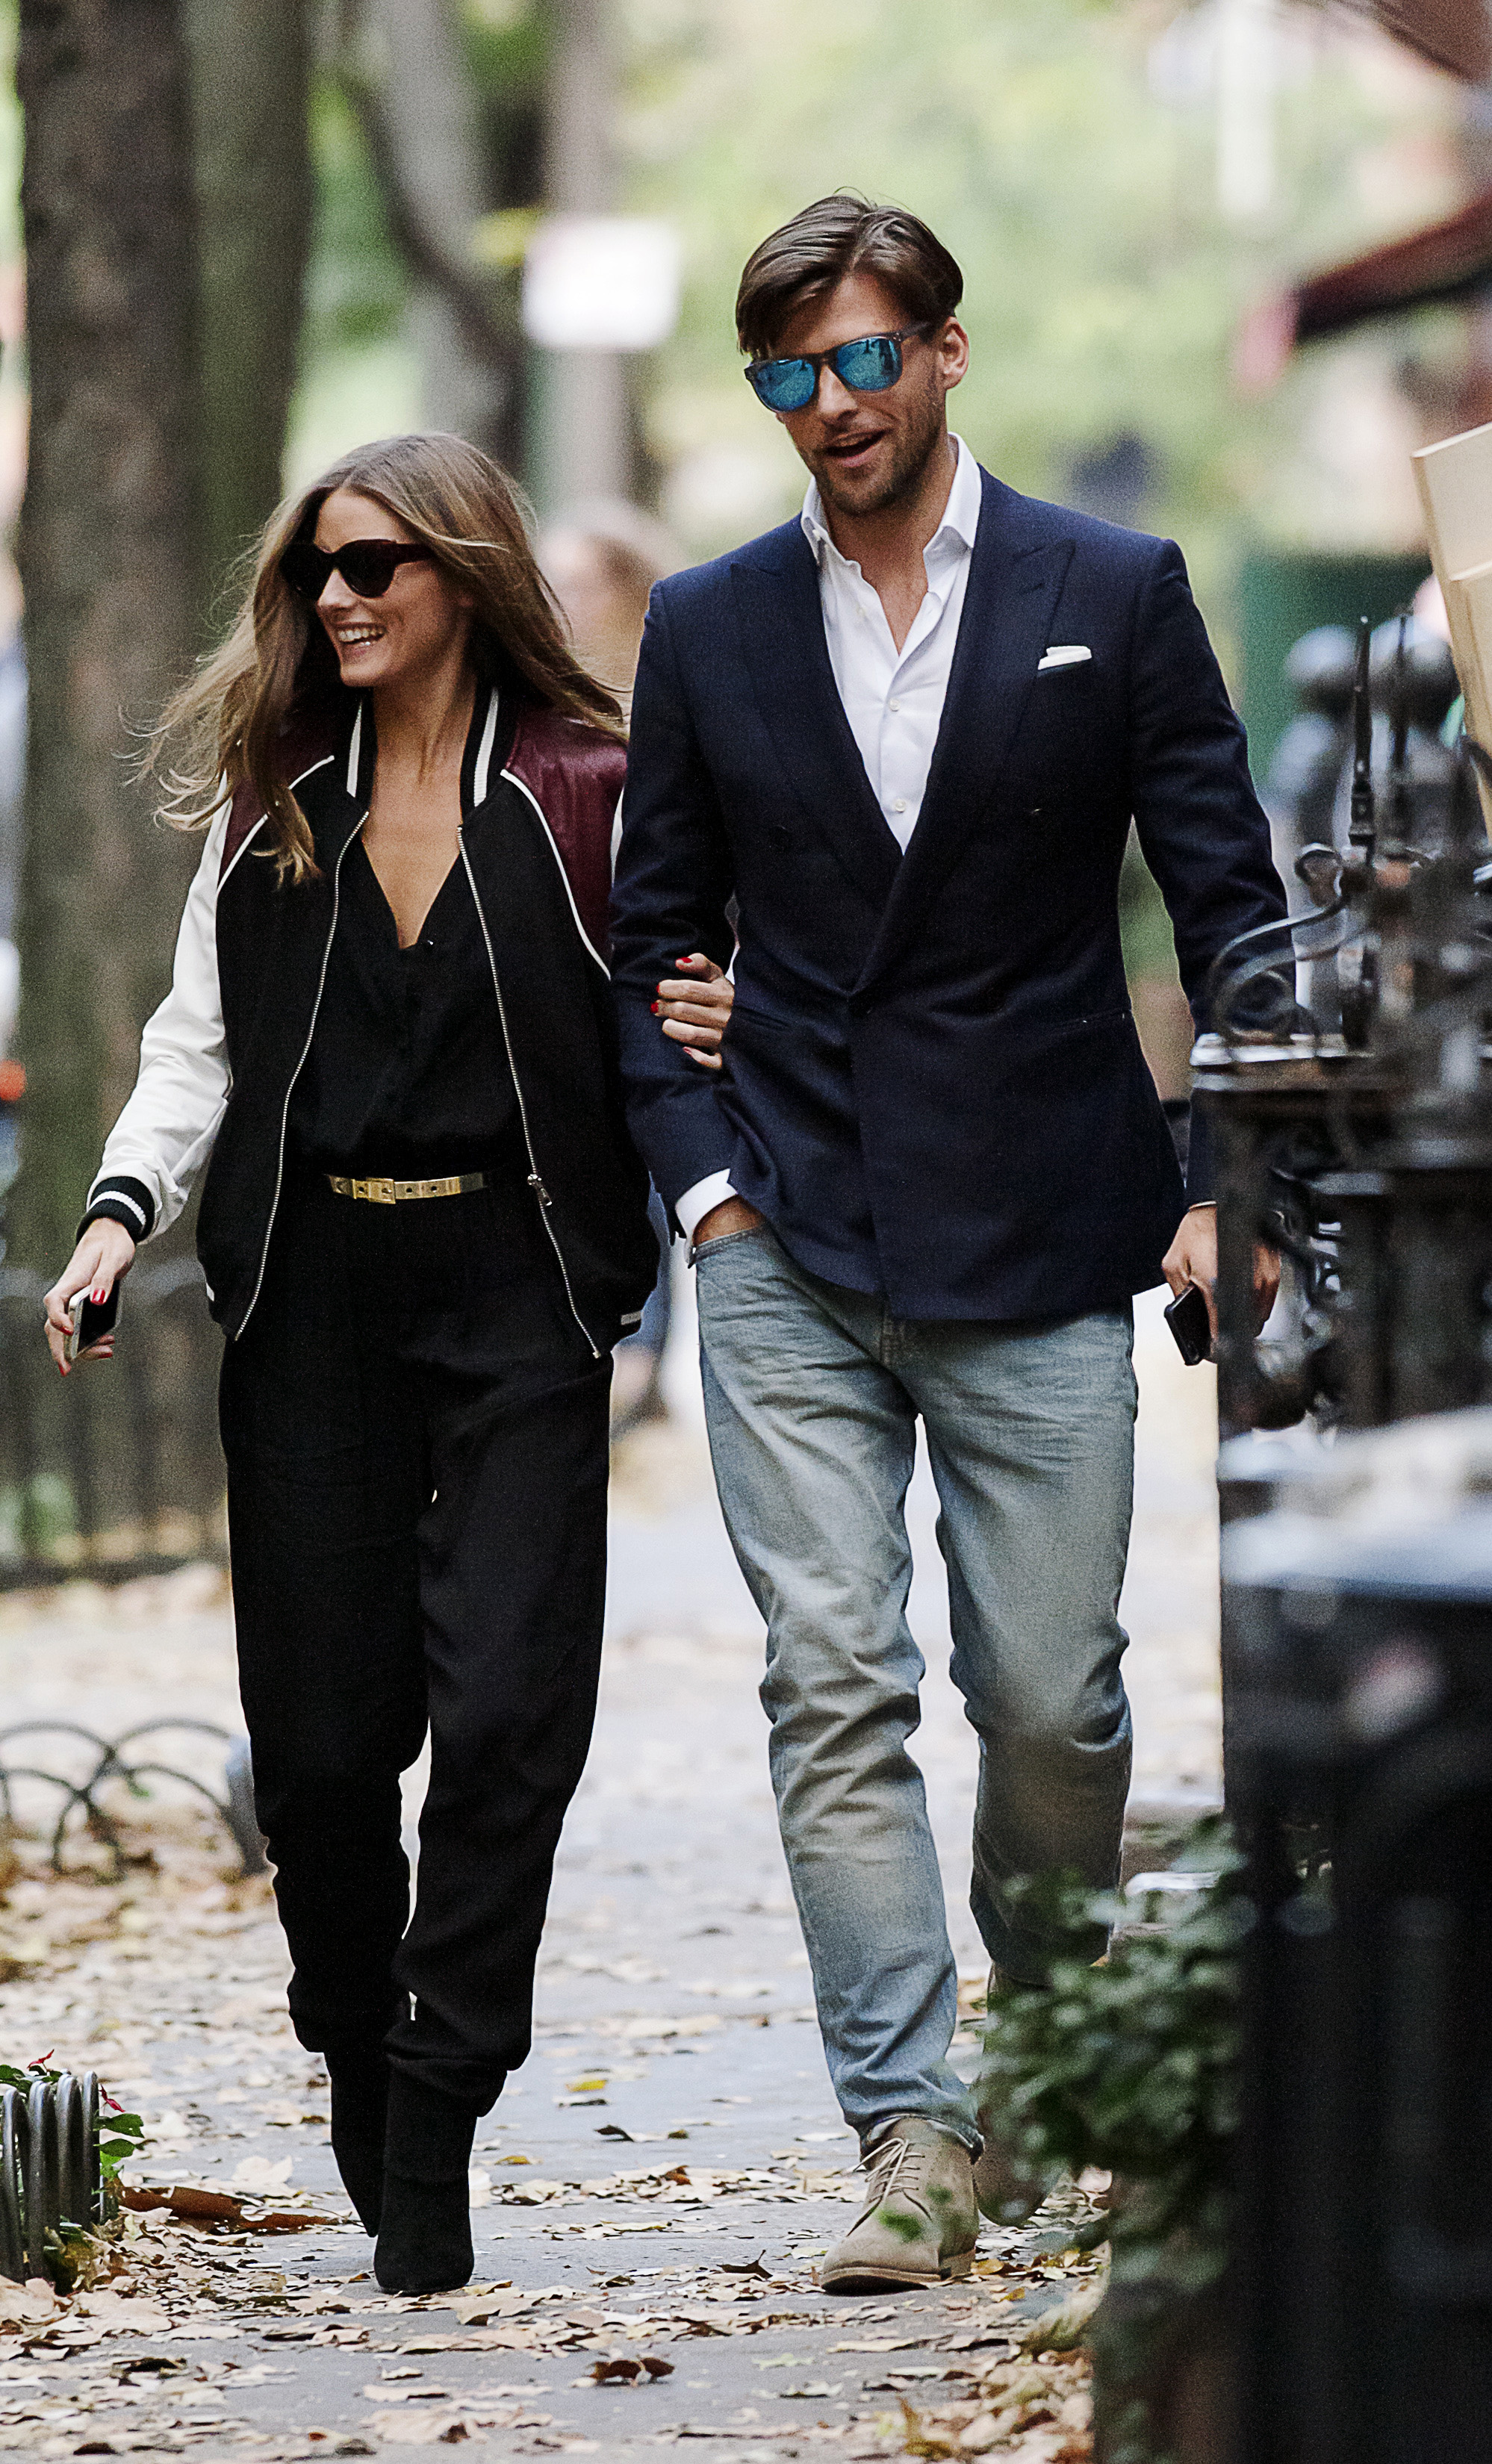 Olivia Palermo seen wearing a varsity jacket and jumpsuit while out with Johannes Huebl during a lunch date in the West Village neighborhood of NYC.  <P> Pictured: Olivia Palermo and Johannes Huebl <P><B>Ref: SPL642474  021113  </B><BR/> Picture by: Jason Webber / Splash News<BR/> </P><P> <B>Splash News and Pictures</B><BR/> Los Angeles:310-821-2666<BR/> New York:212-619-2666<BR/> London:870-934-2666<BR/> <span id=